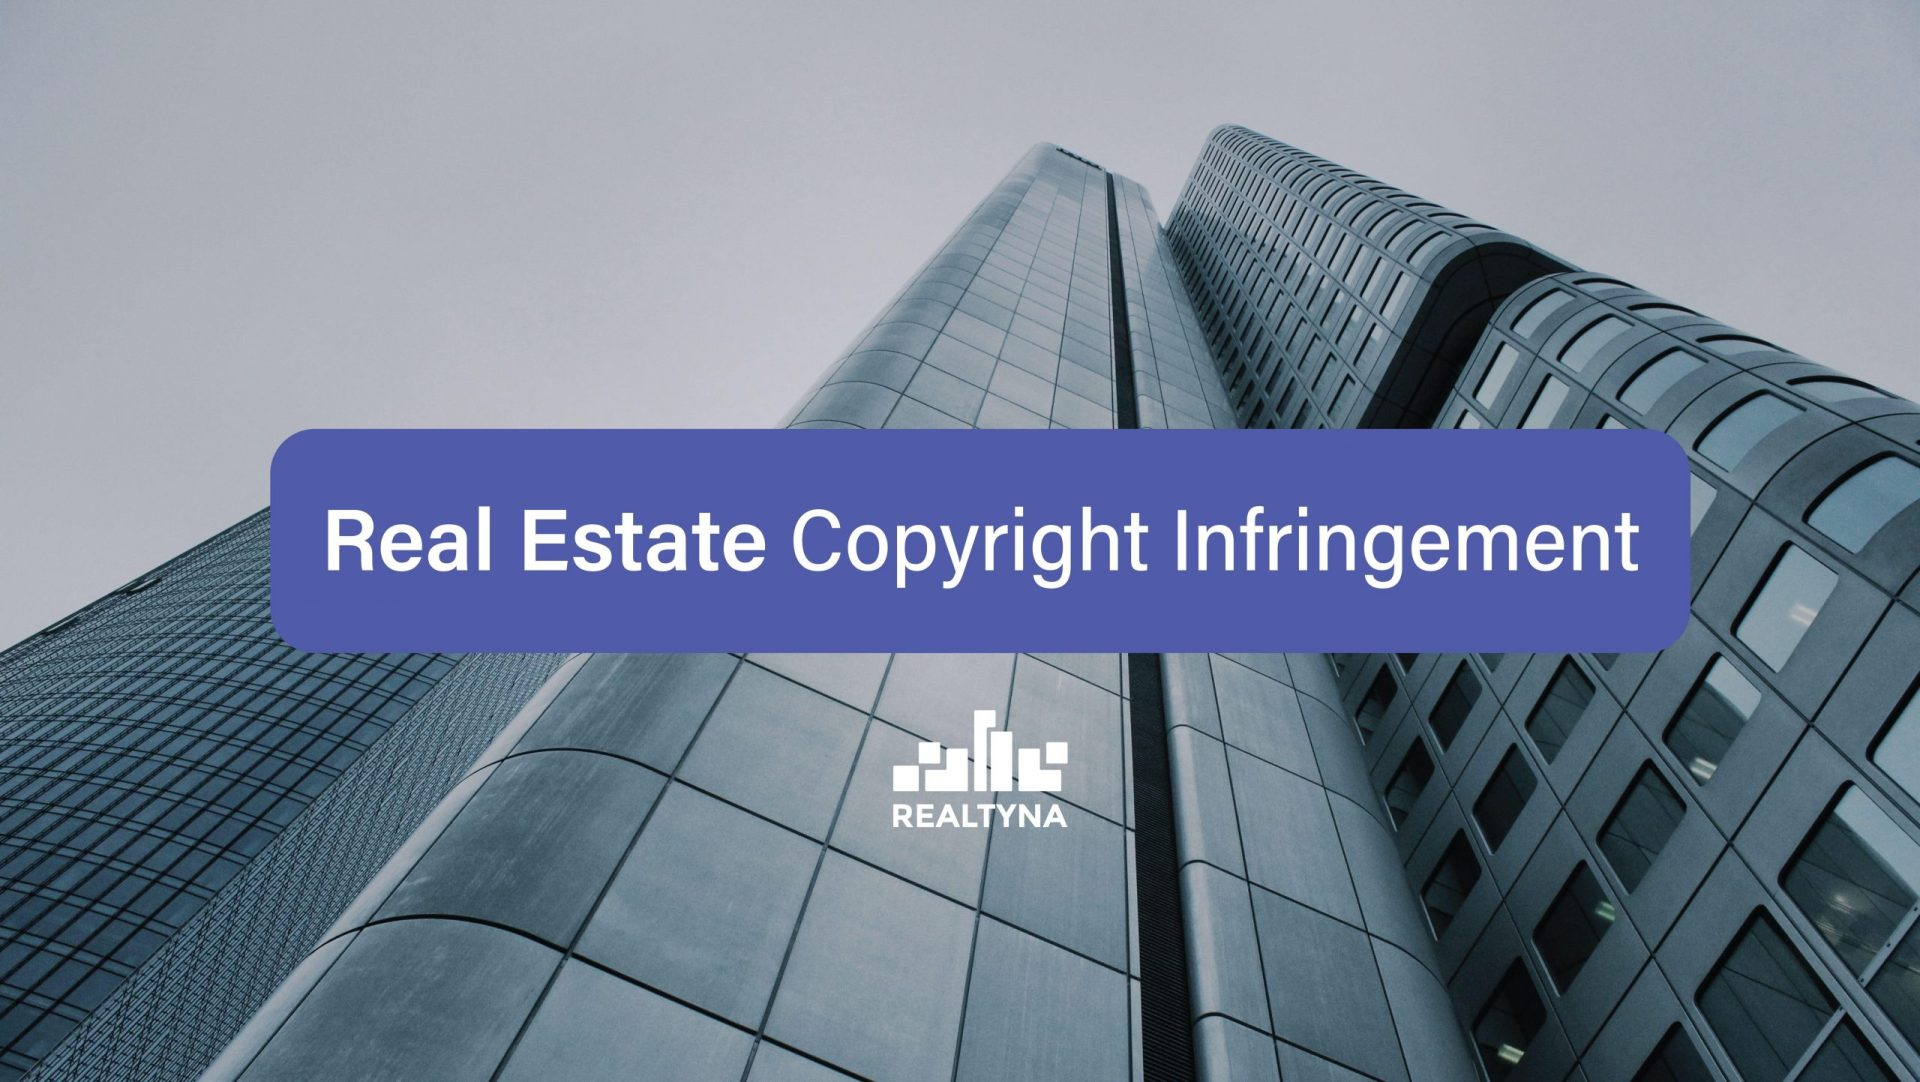 Real Estate Copyright Infringement